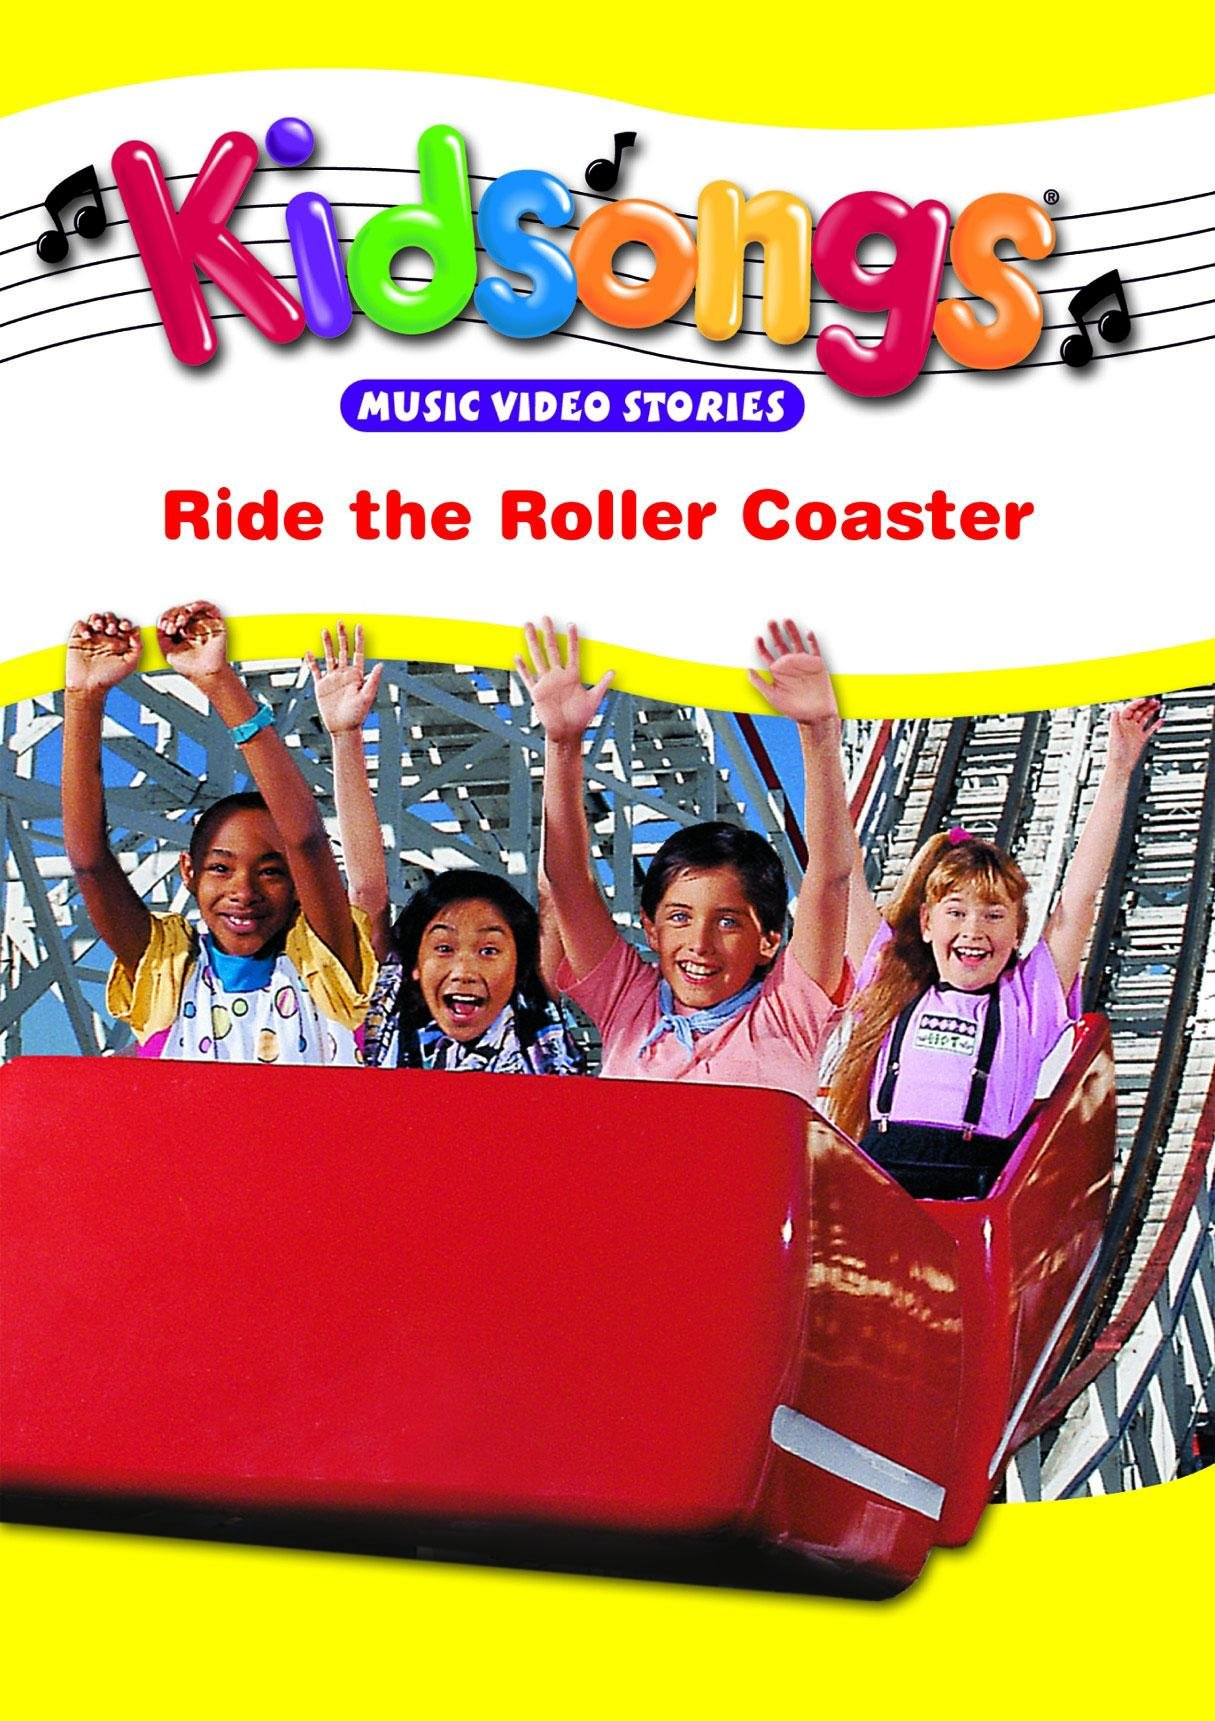 Amazon.com: Watch Kidsongs: Ride the Roller Coaster | Prime Video